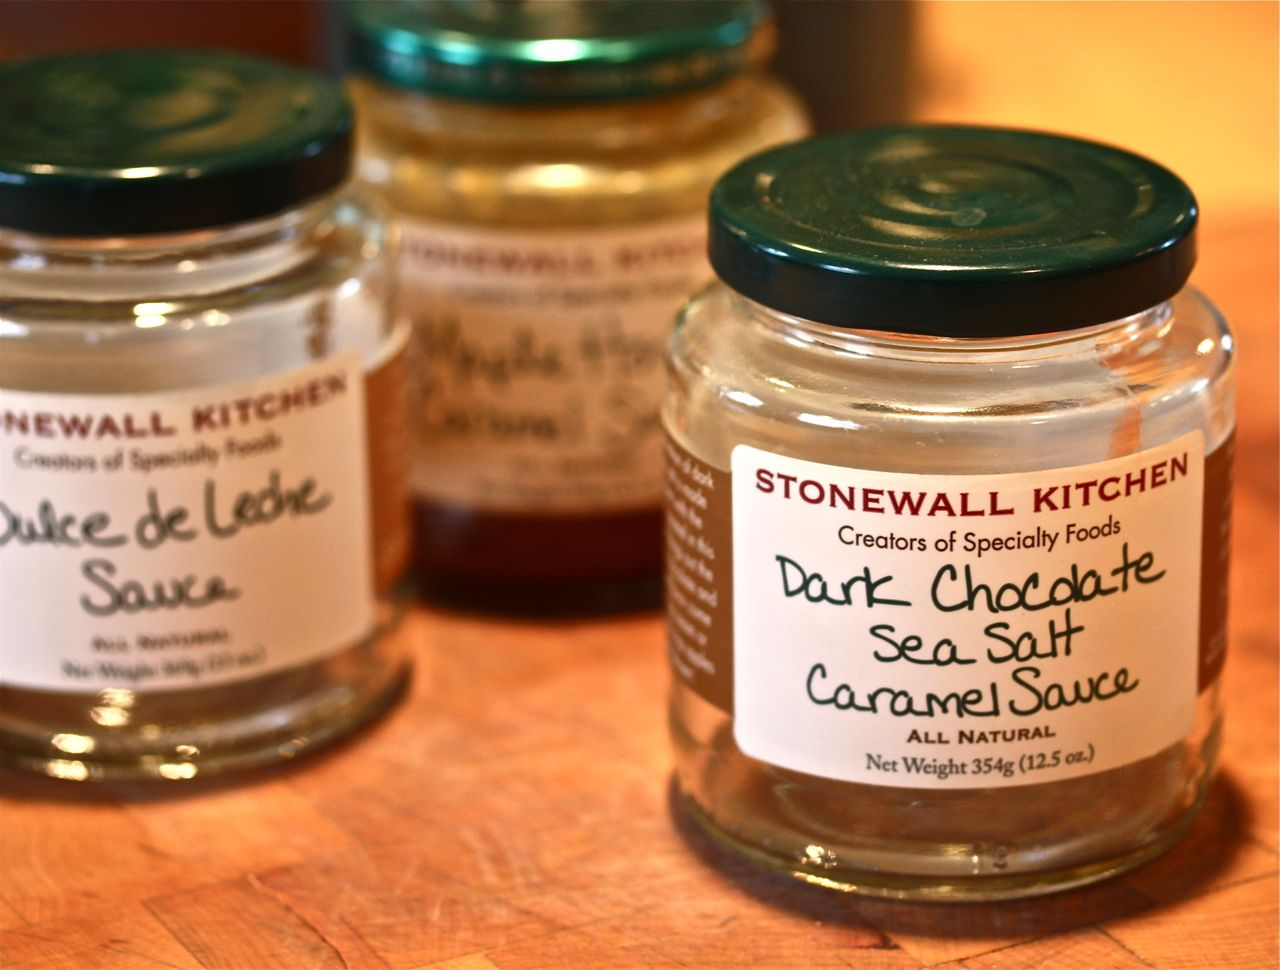 stonewall kitchen dark chocolate sea salt caramel sauce pull out shelves for cabinets | breaking new ground in zone 6